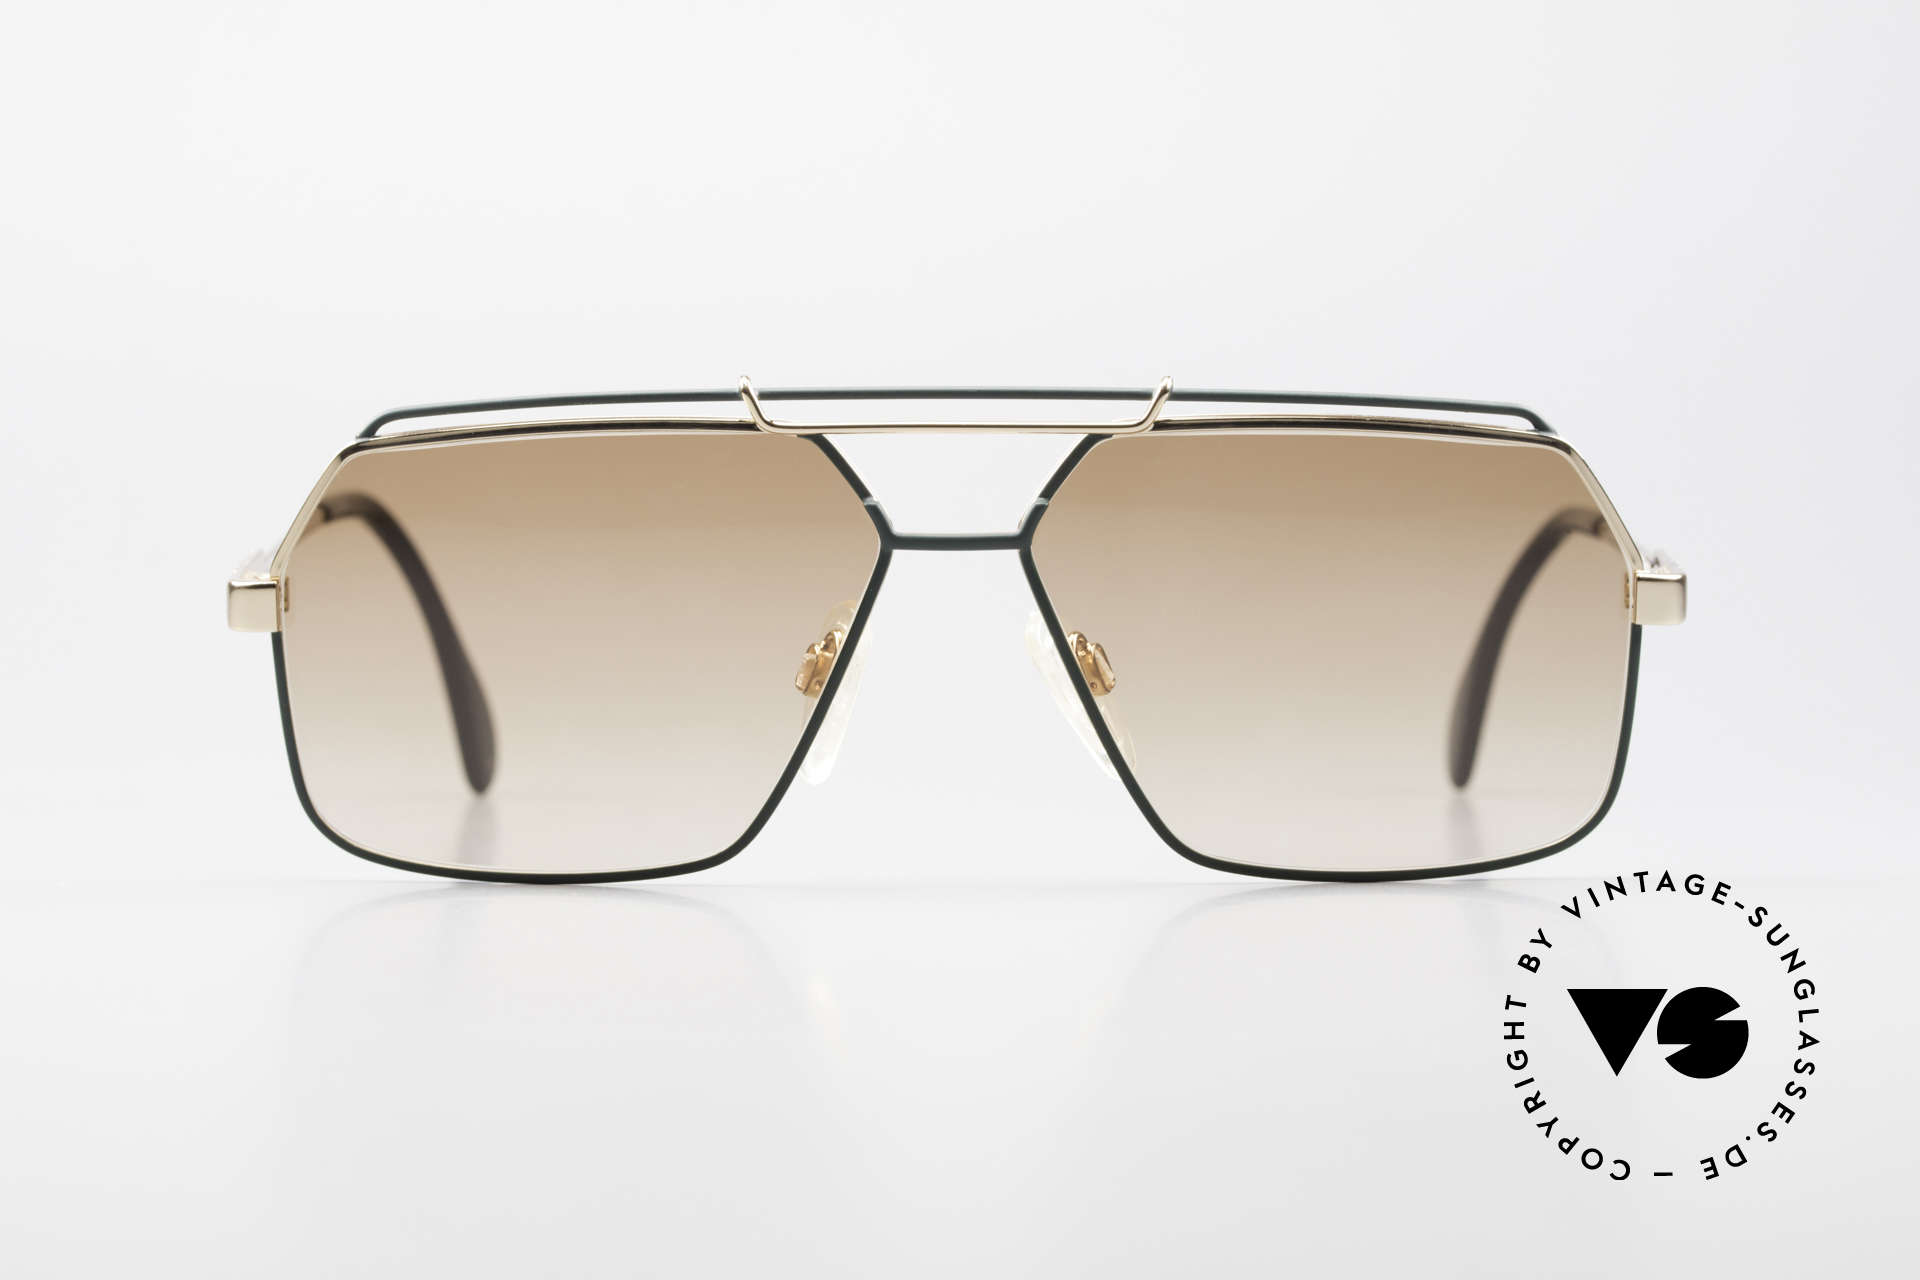 Cazal 734 1980's West Germany Shades, finest quality from W.Germany, in size 59/13, 140, Made for Men